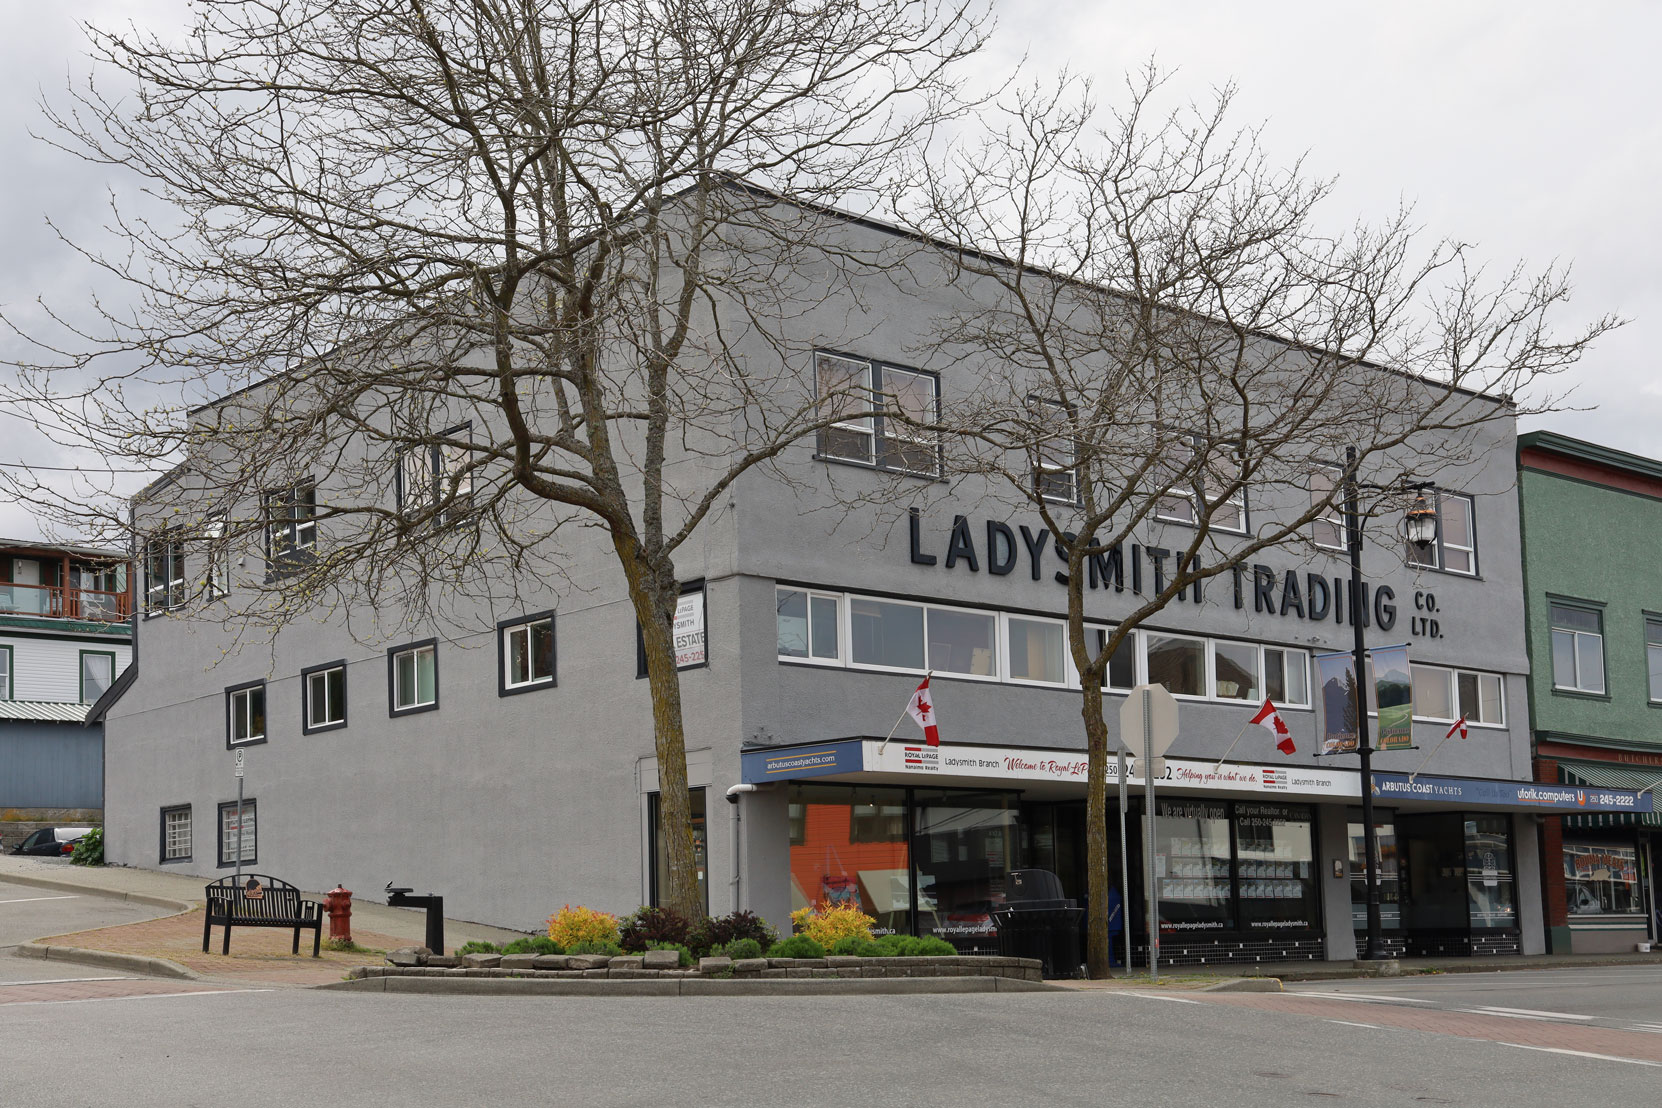 410 1st Avenue in downtown Ladysmith.